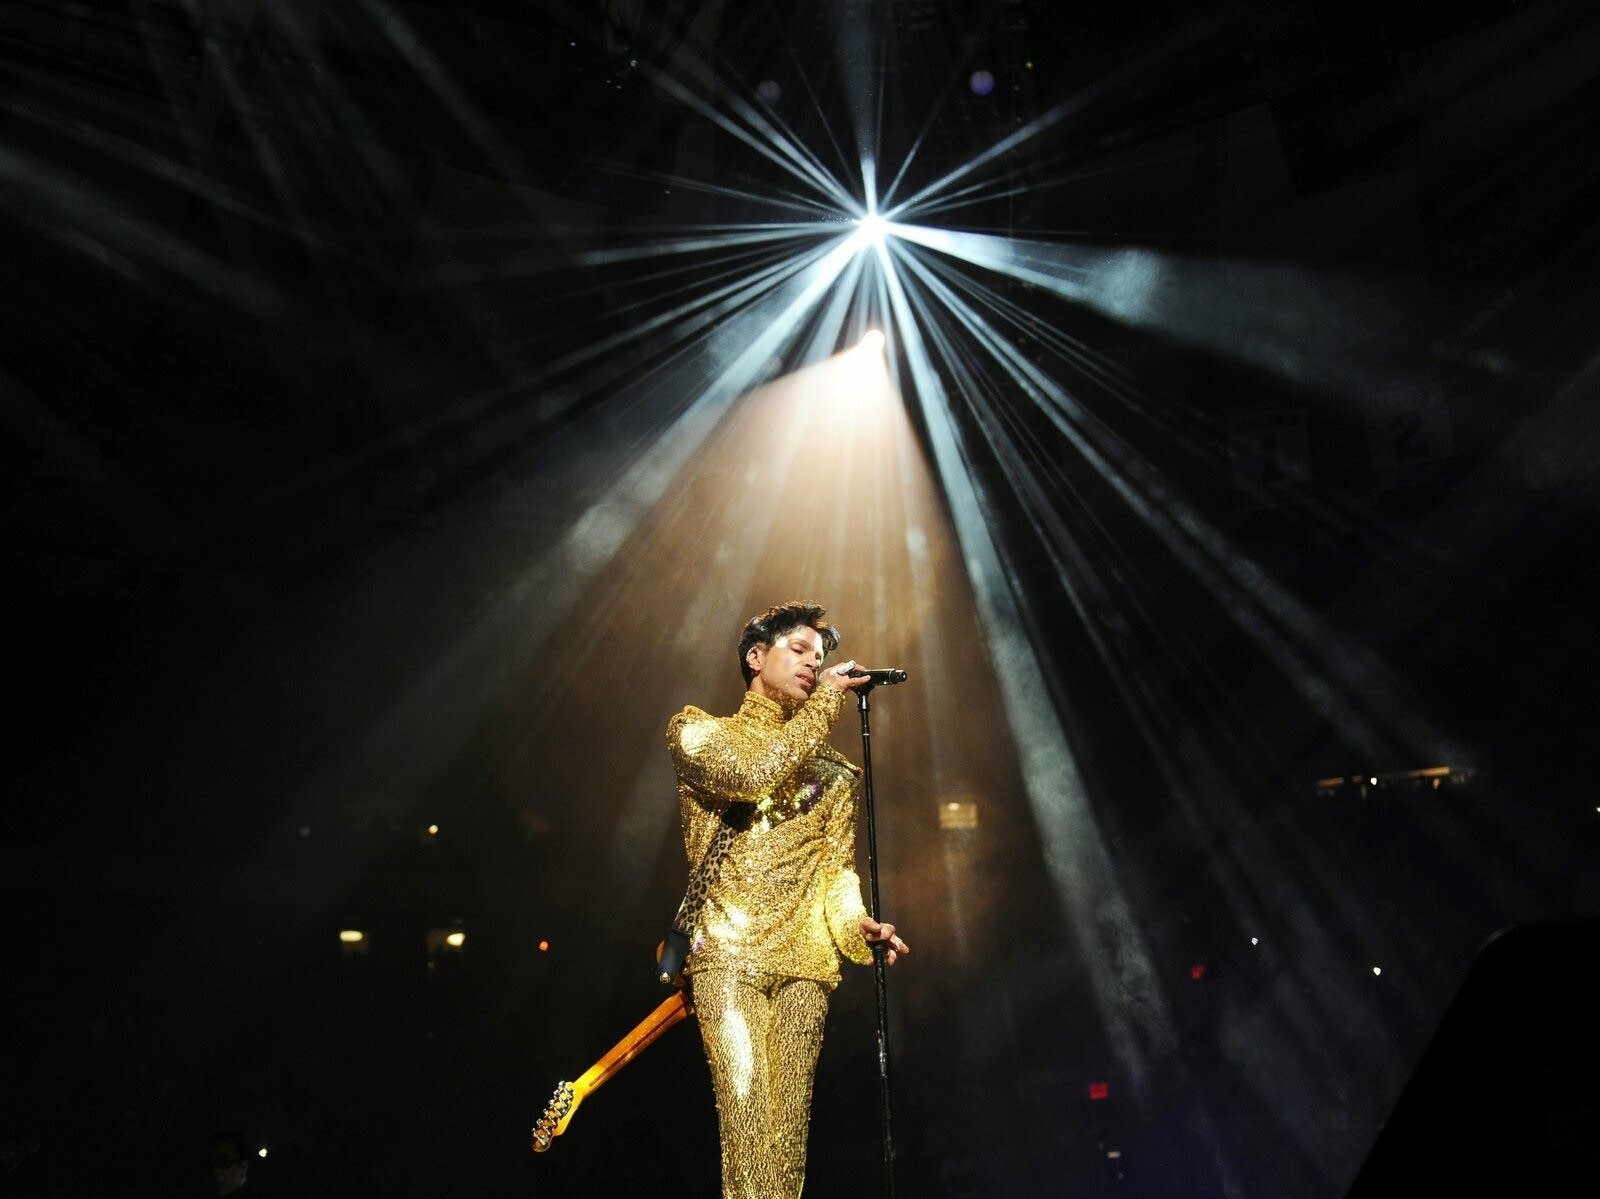 Prince performing onstage under a spotlight